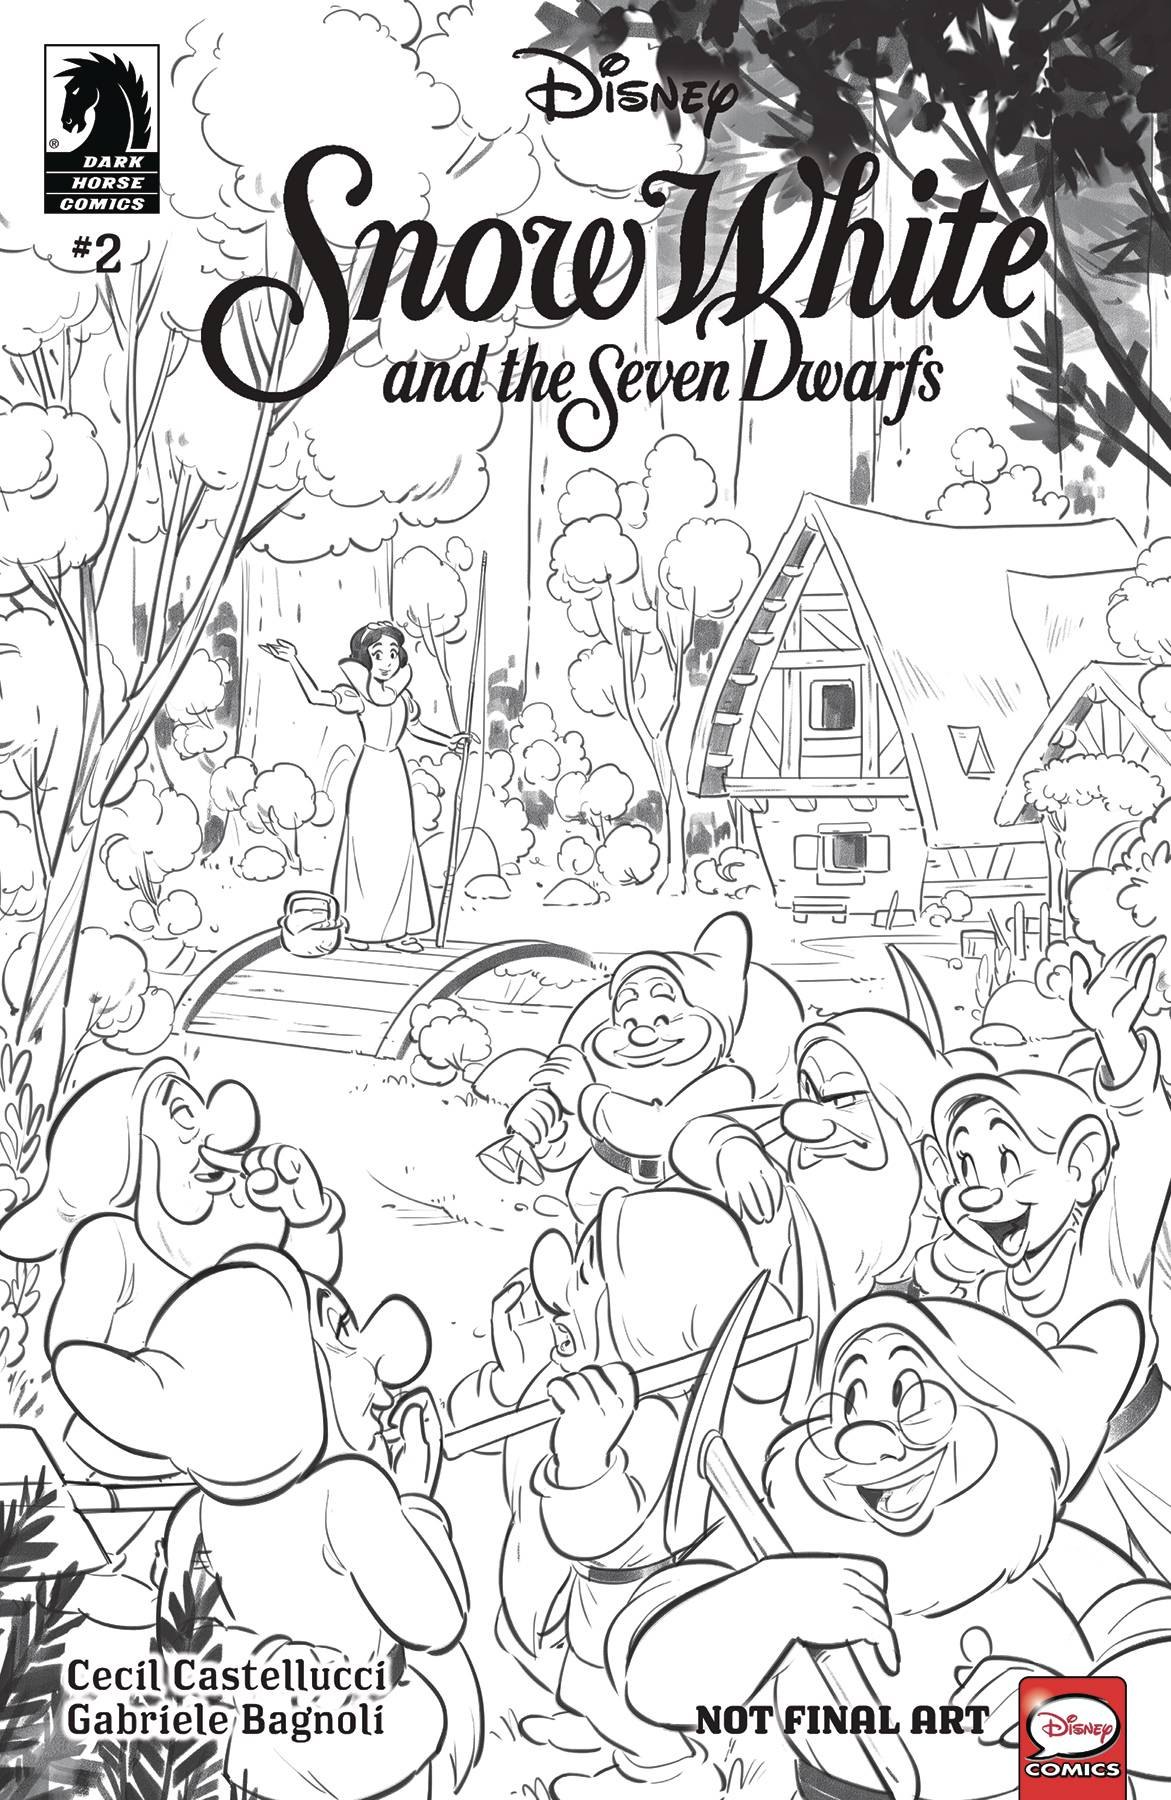 DISNEY SNOW WHITE AND SEVEN DWARFS 2 of 3.jpg